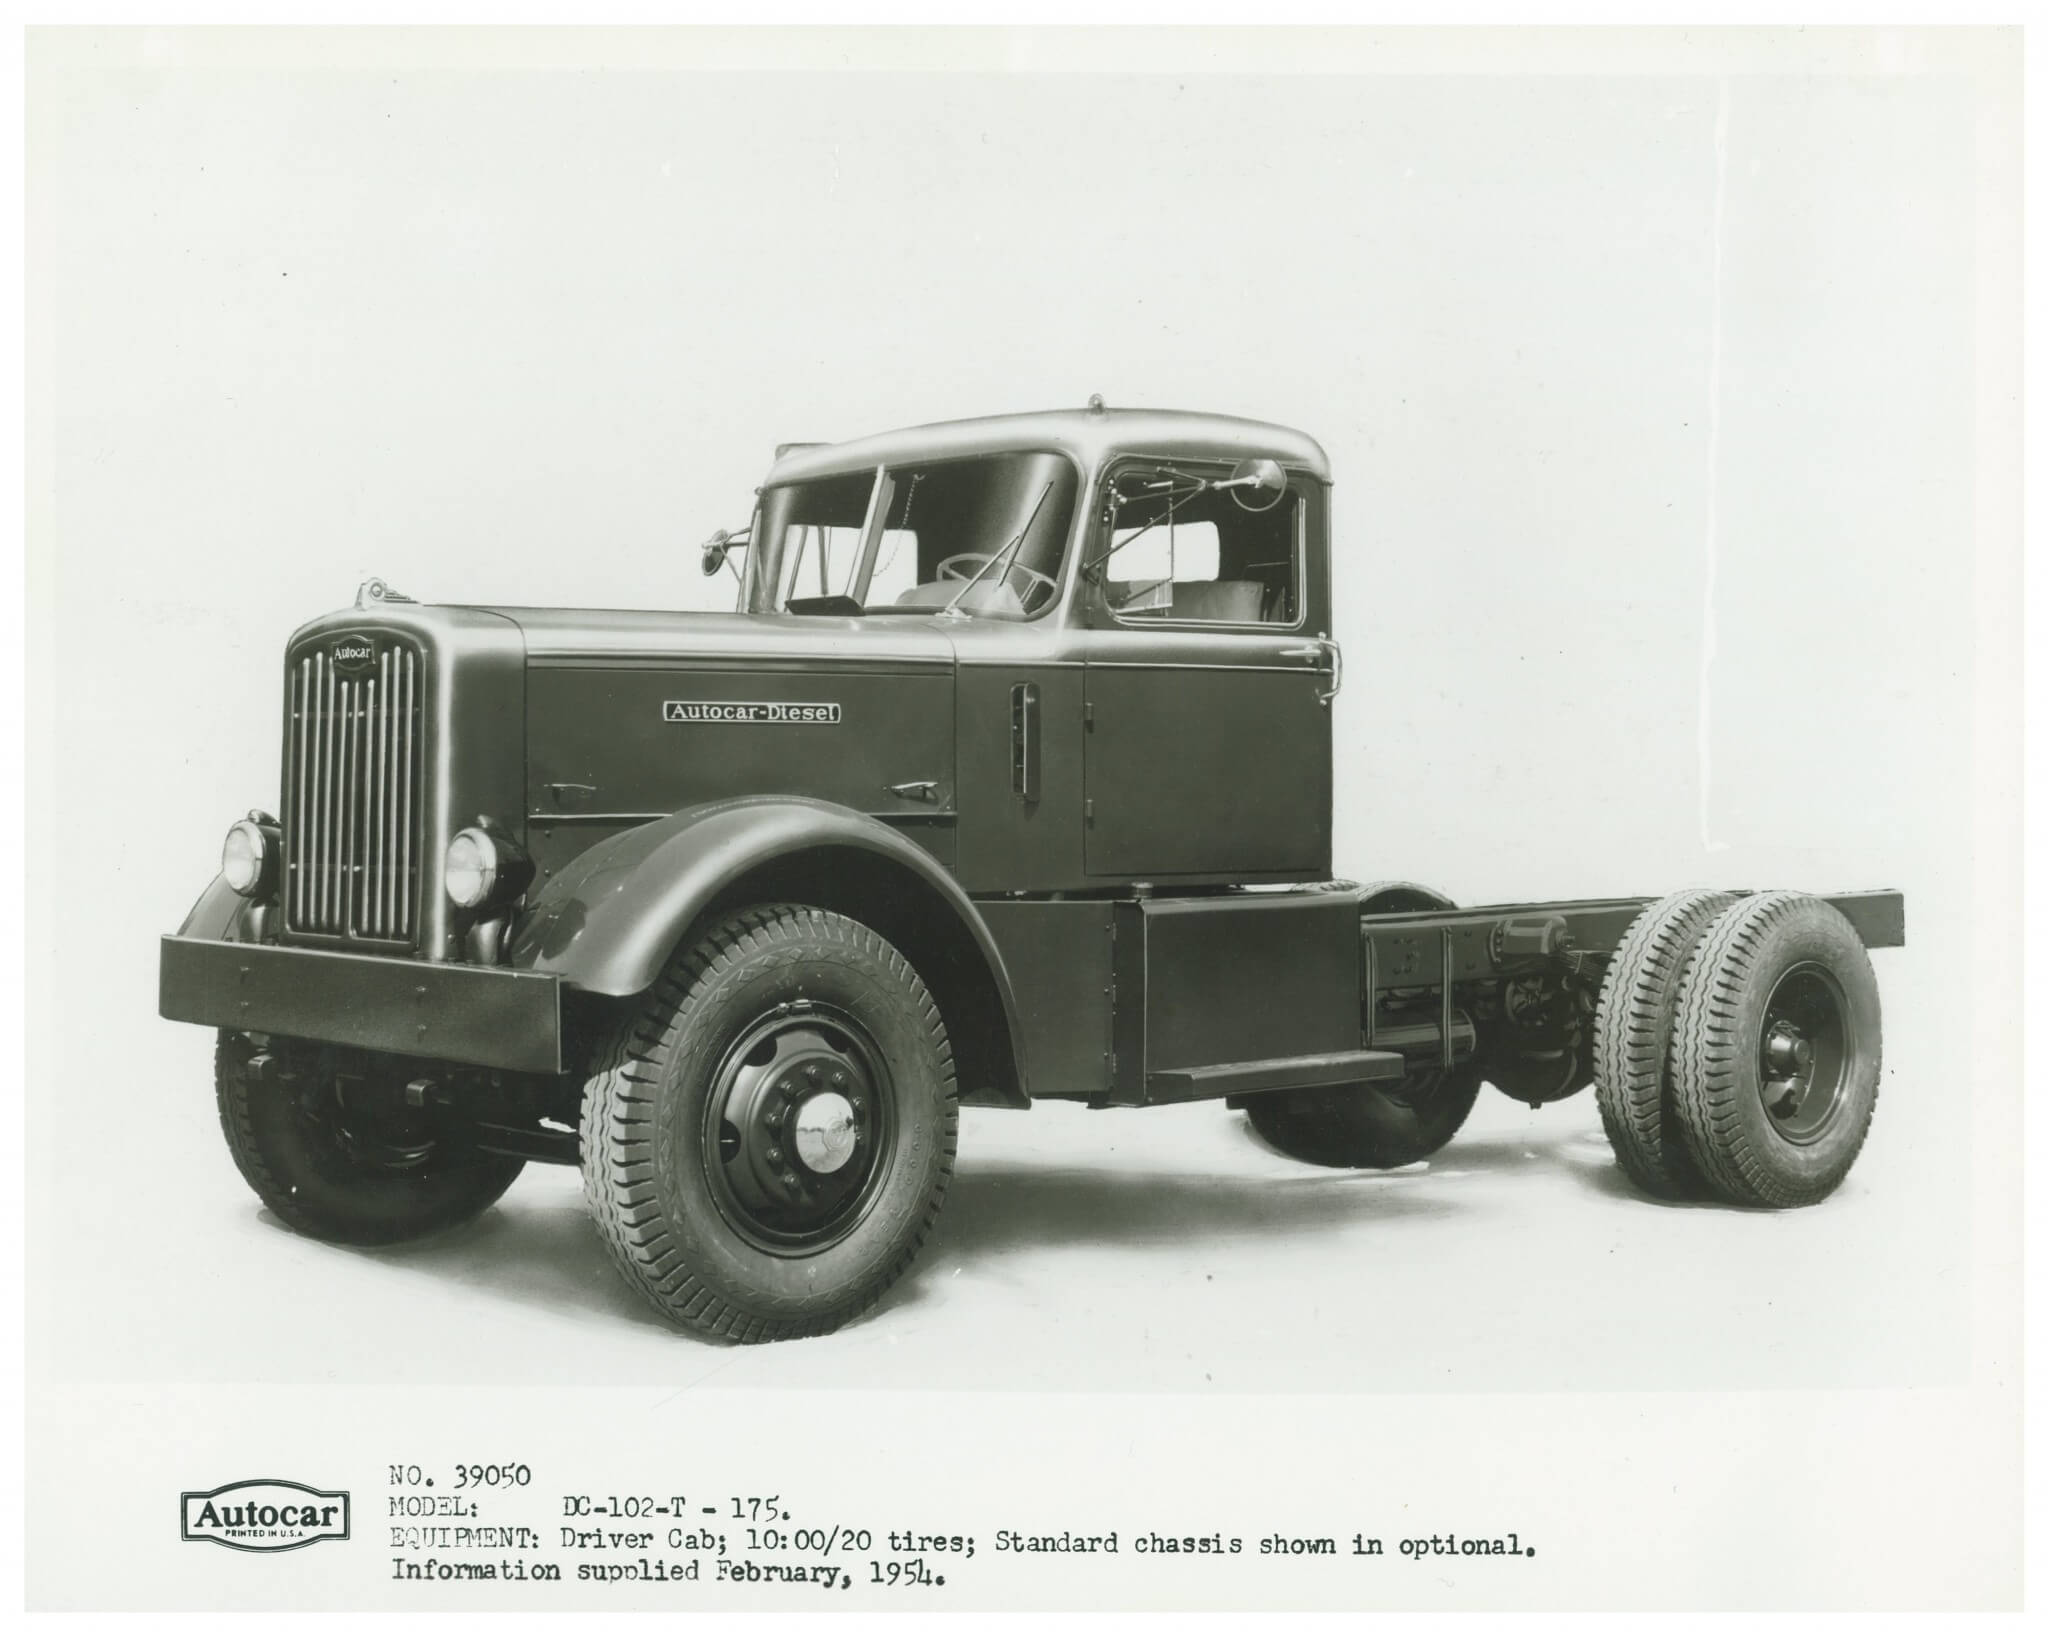 Custom branding was the new thrust of White's Autocar brand in 1954. This DC Series platform shown is considered the standard chassis.